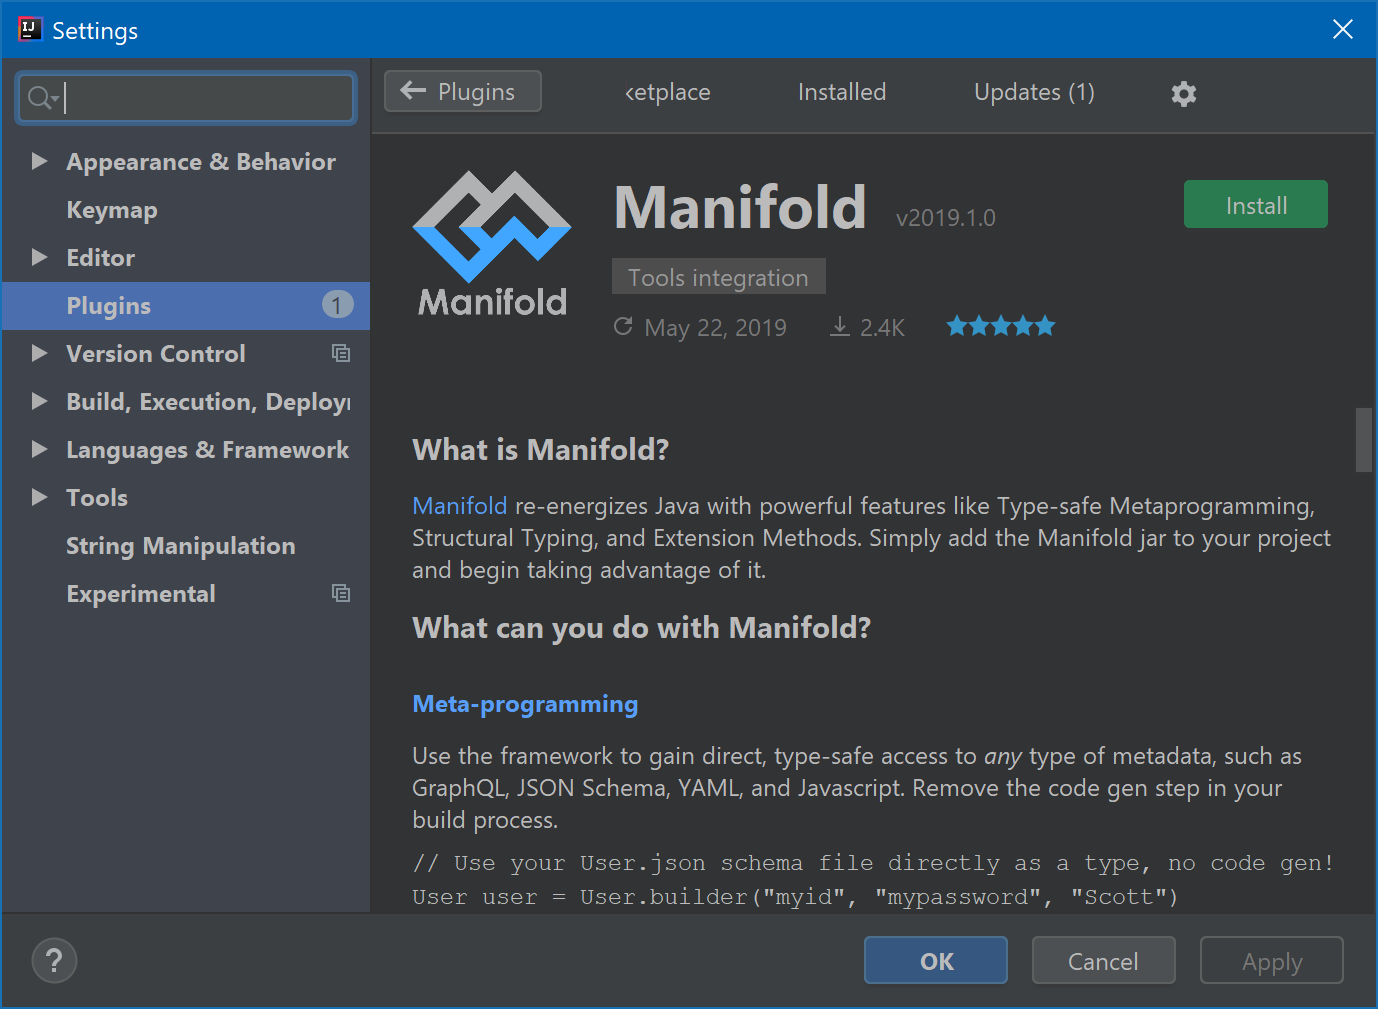 Manifold - supplements Java with game-changing features like Type